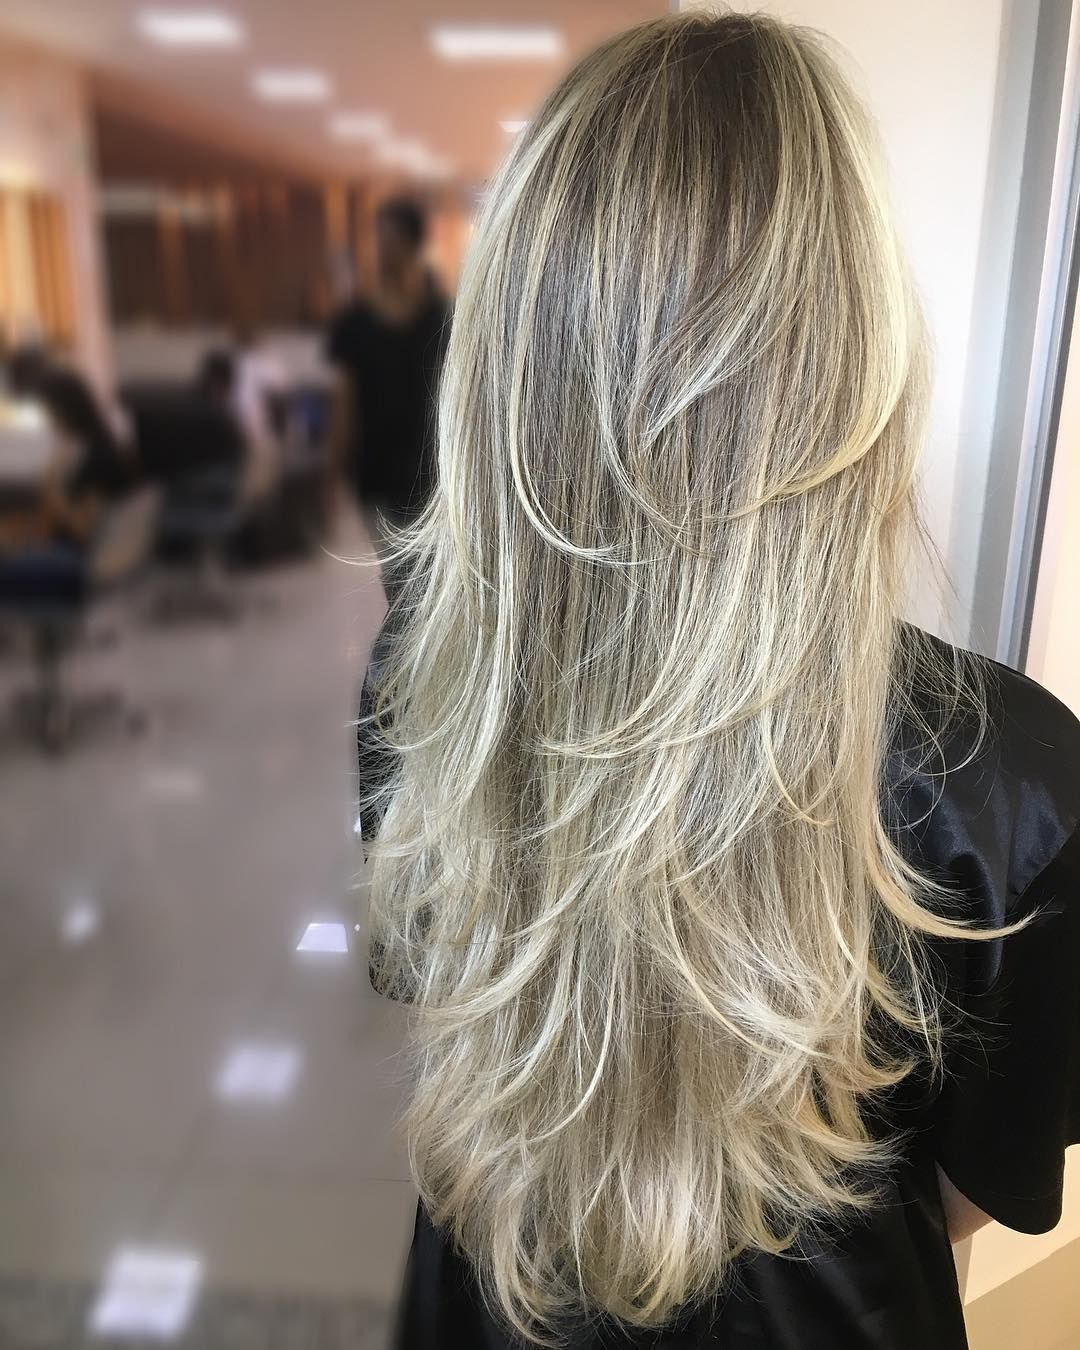 New Head Turning Long Straight Balayage Hairstyles 2020 Female You Must Consider Right Now In 2020 Haircuts For Long Hair Straight Balayage Hair Haircuts For Long Hair